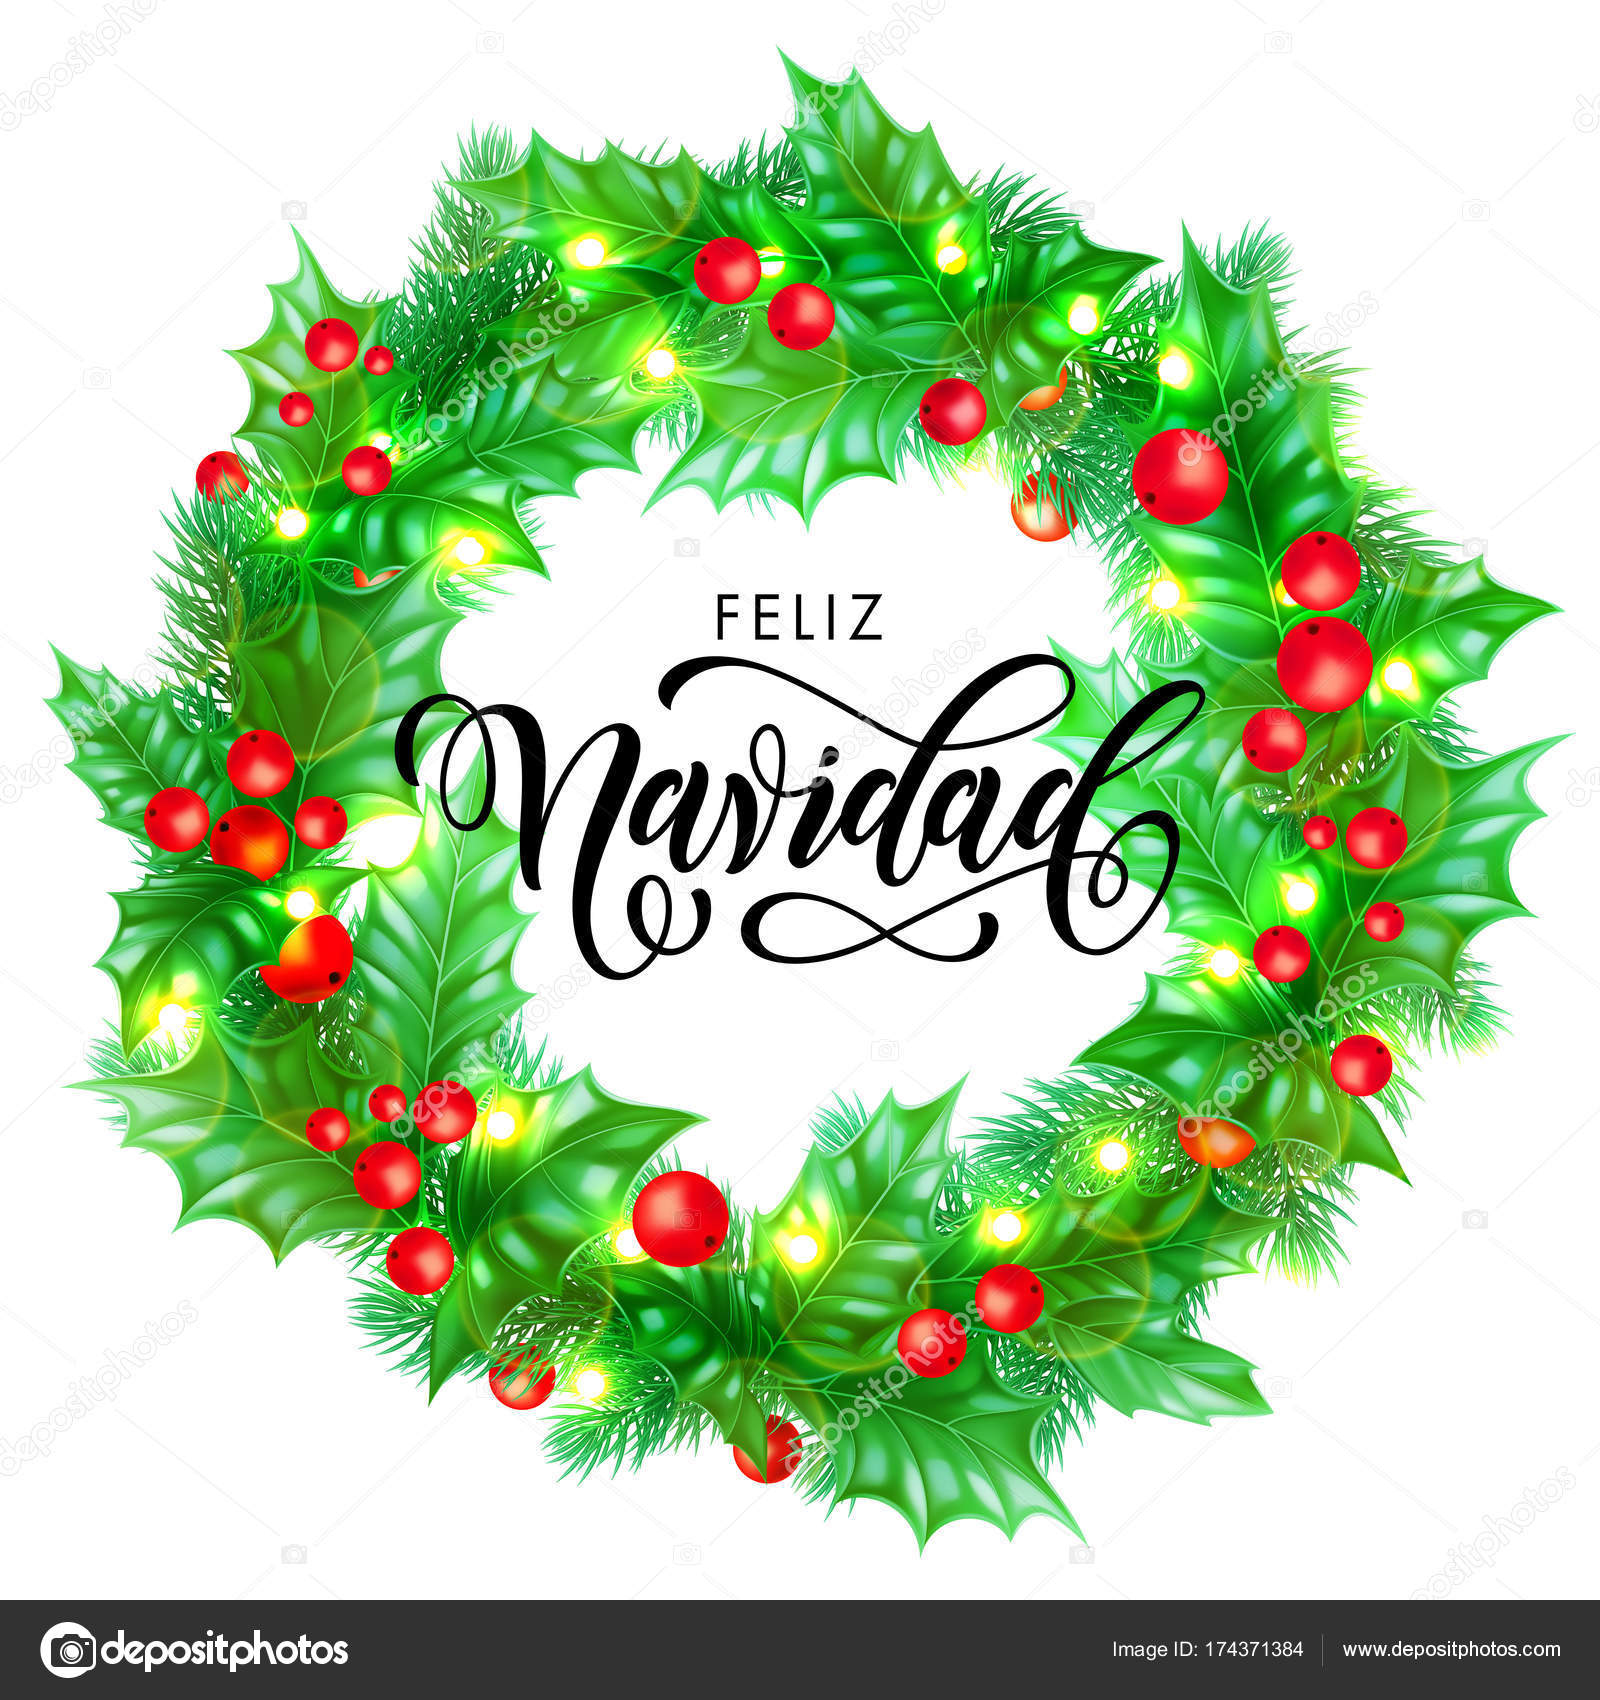 Feliz Navidad Spanish Merry Christmas Holiday Hand Drawn Calligraphy